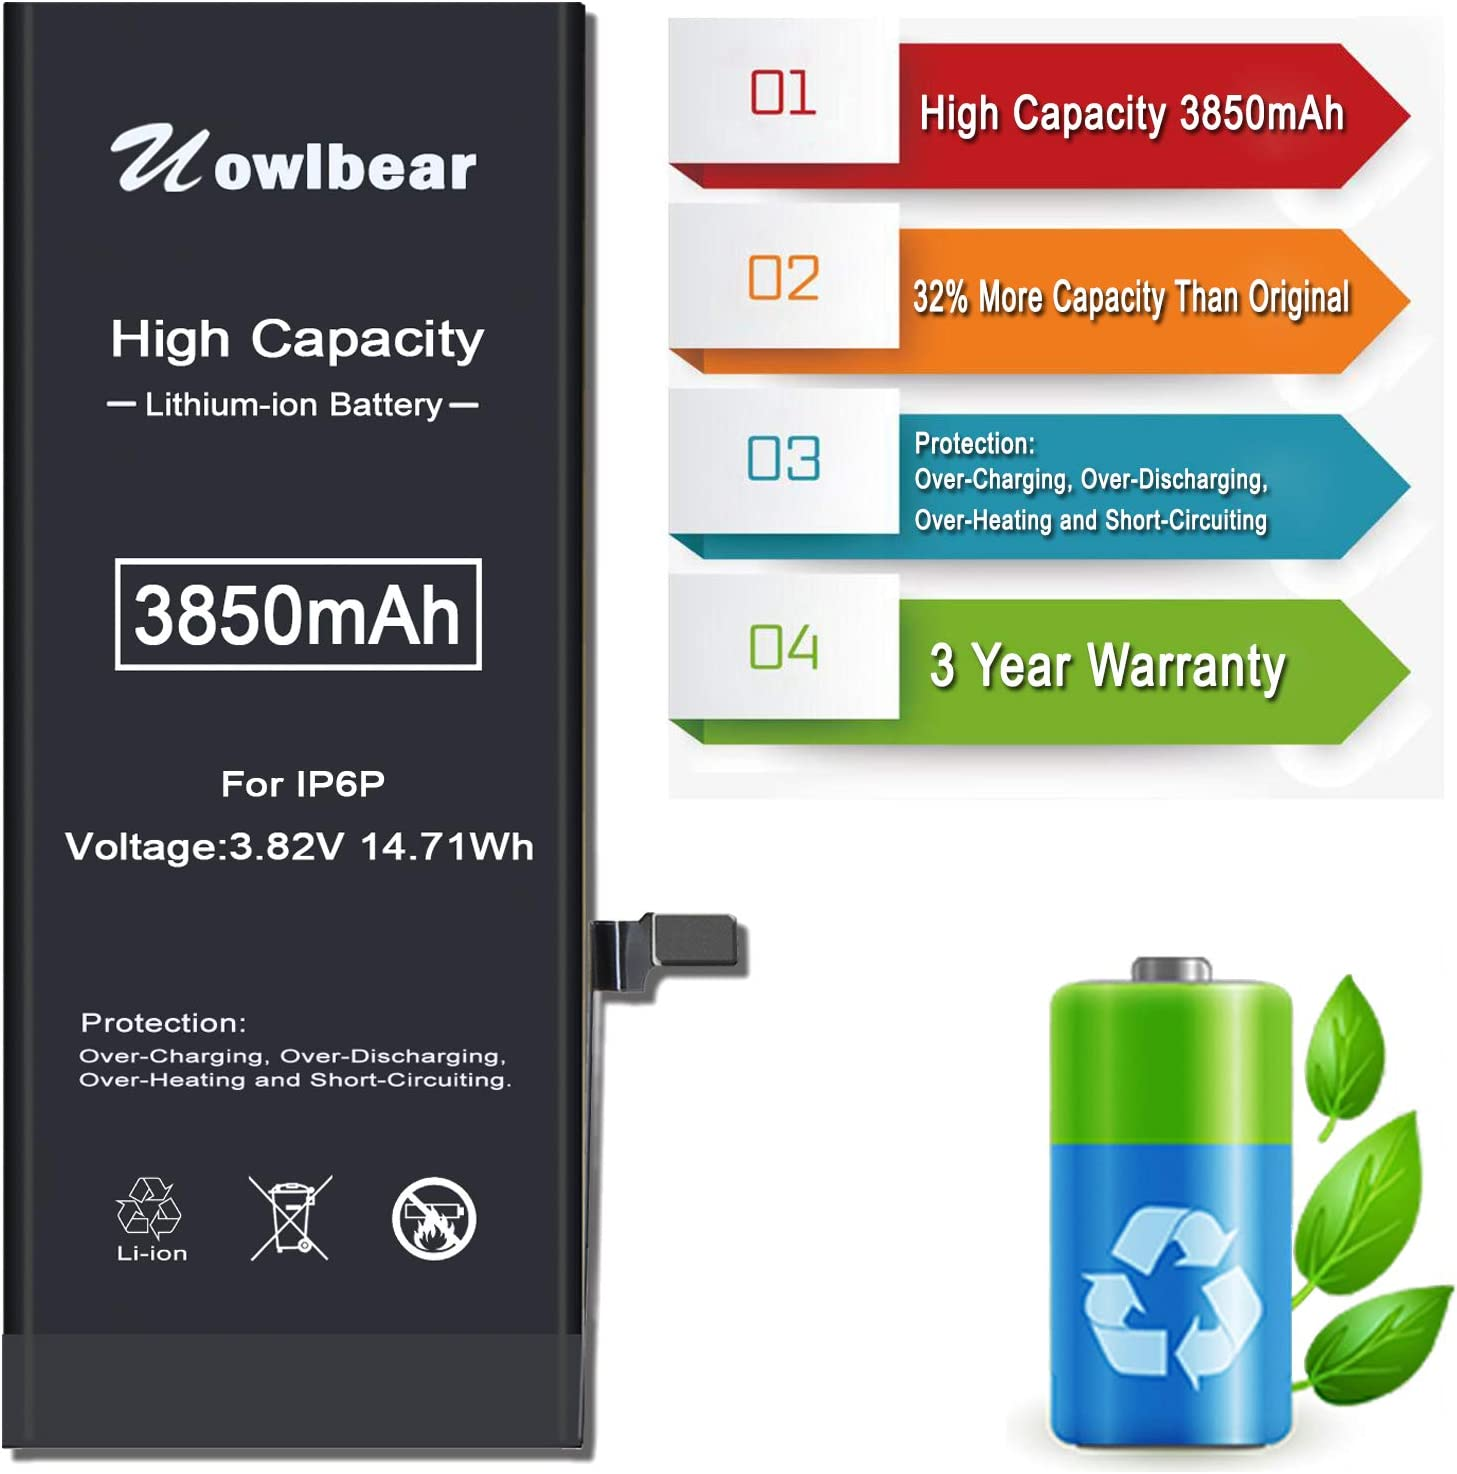 Electronics uowlbear 3850mAh Battery for iPhone 6 Plus A1522 A1524 ...